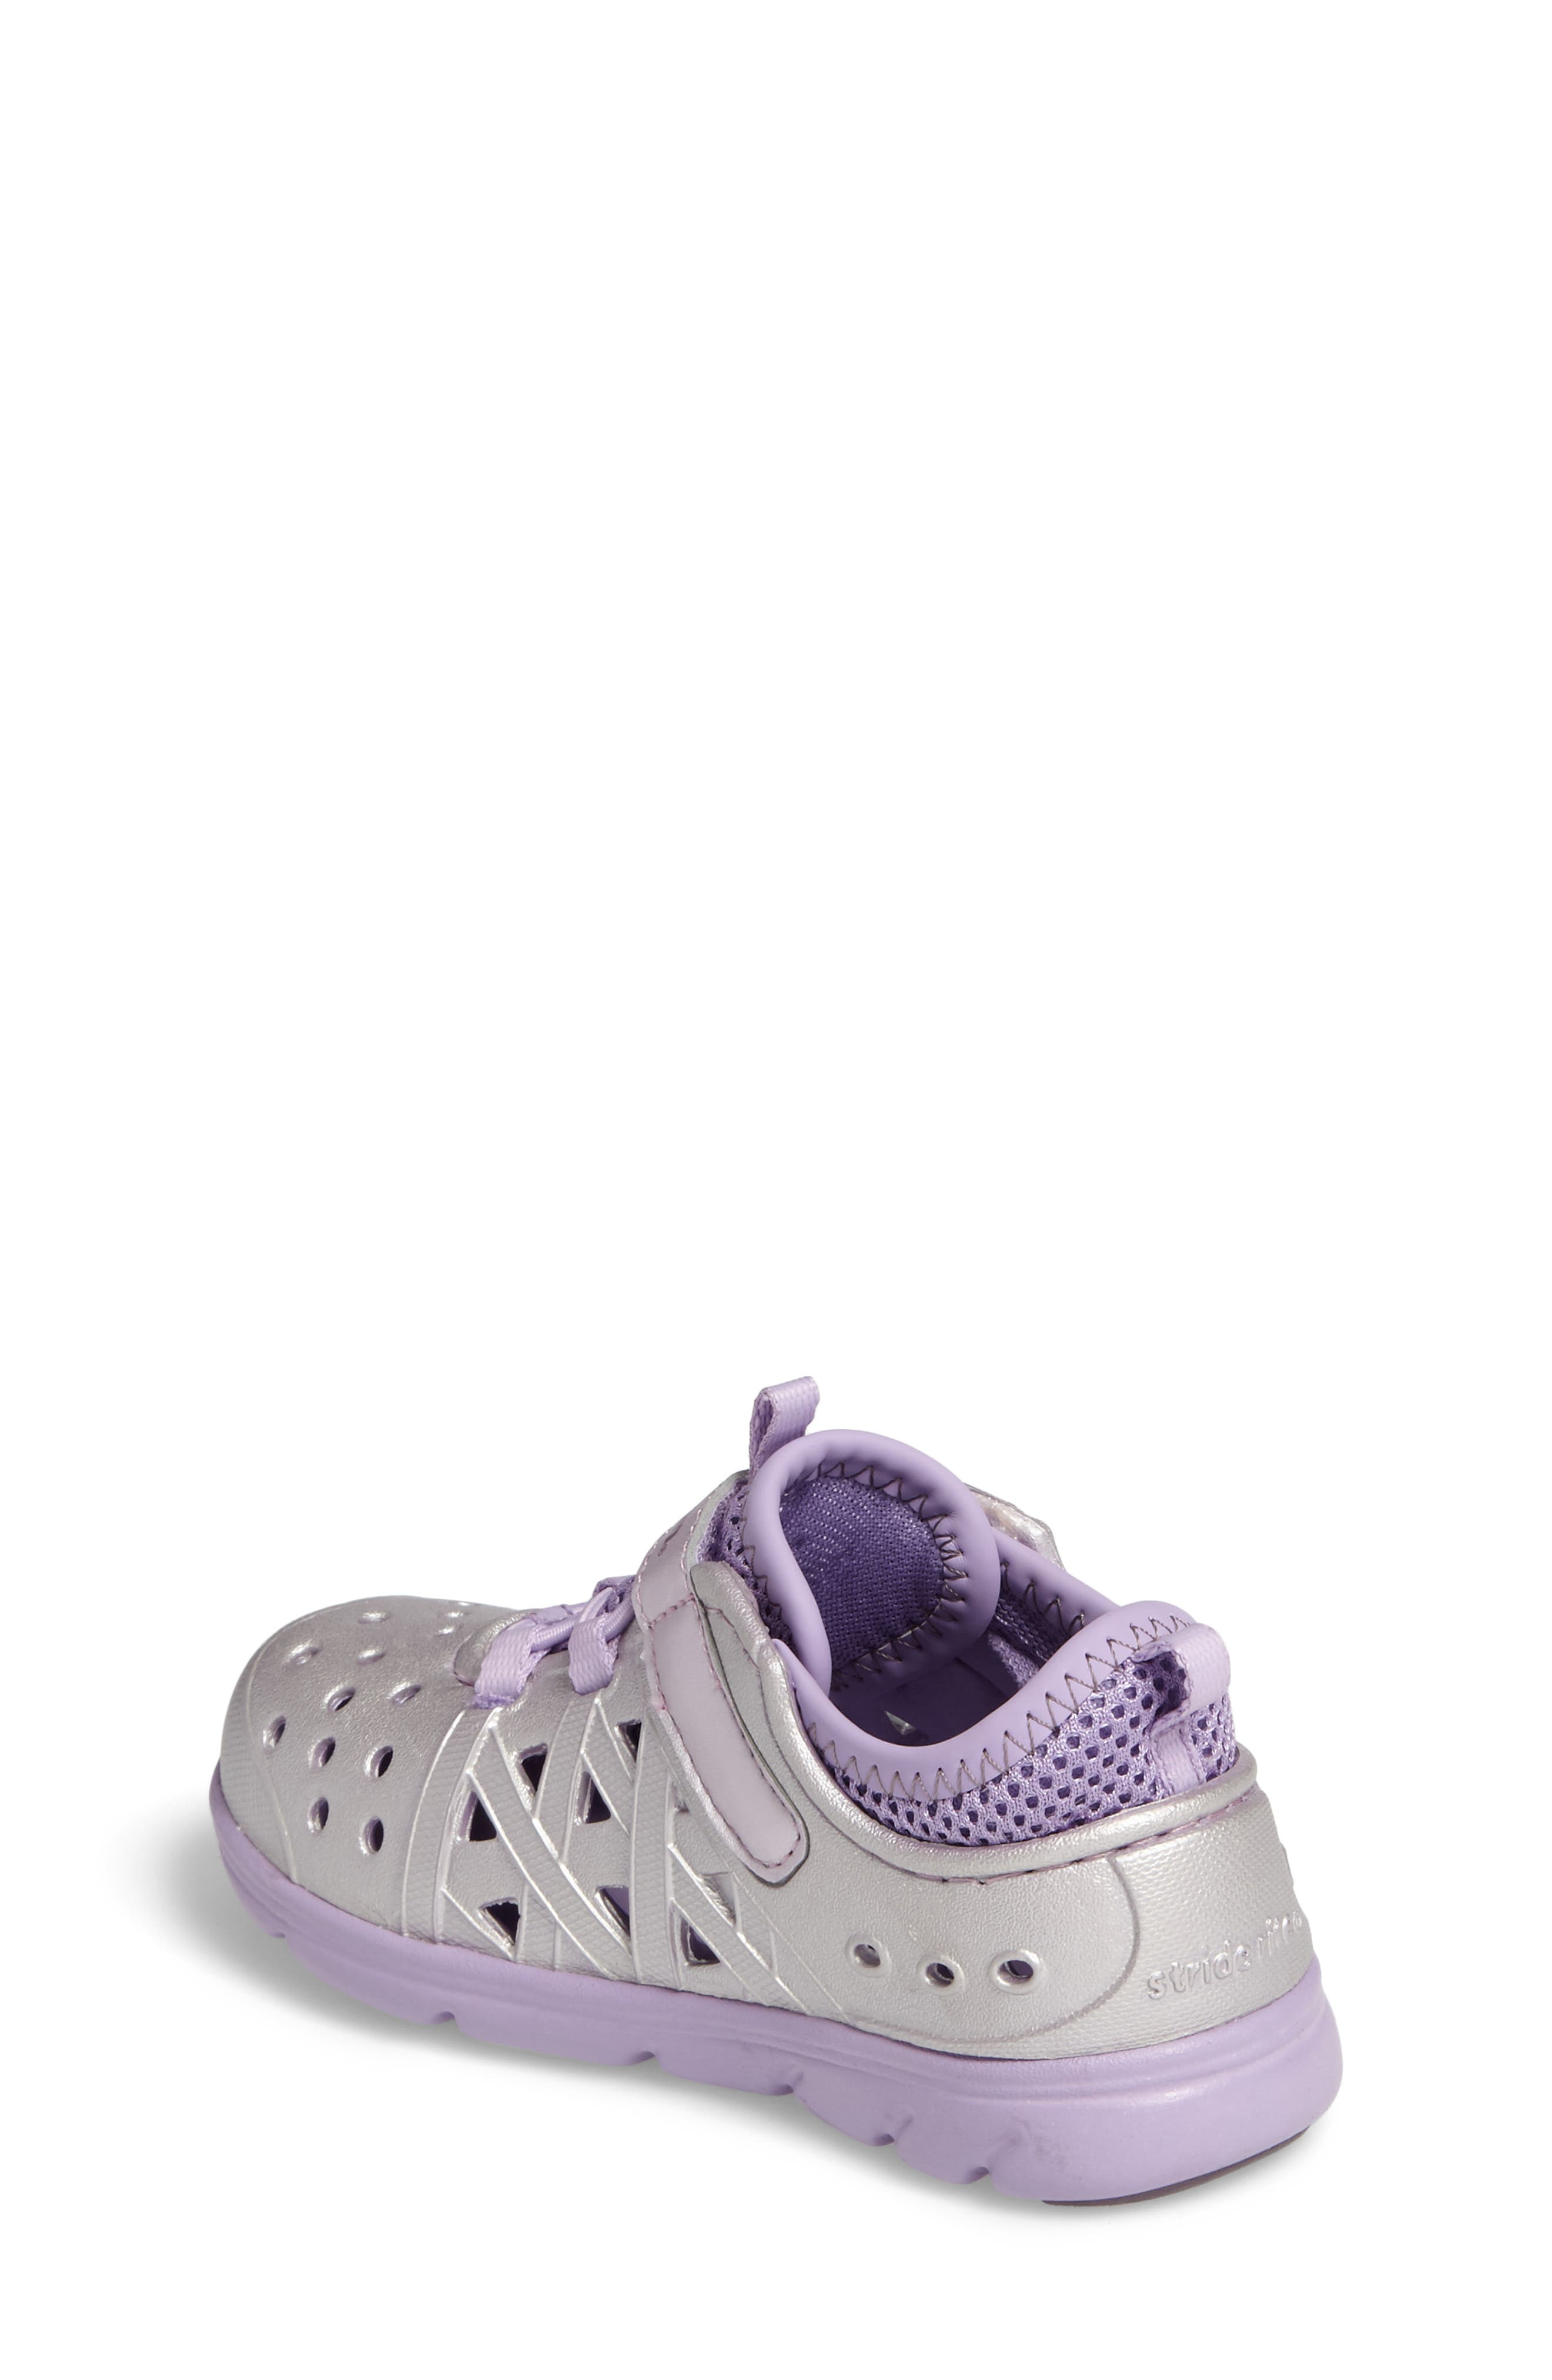 Made2Play<sup>®</sup> Phibian Sneaker,                             Alternate thumbnail 2, color,                             Purple Metallic